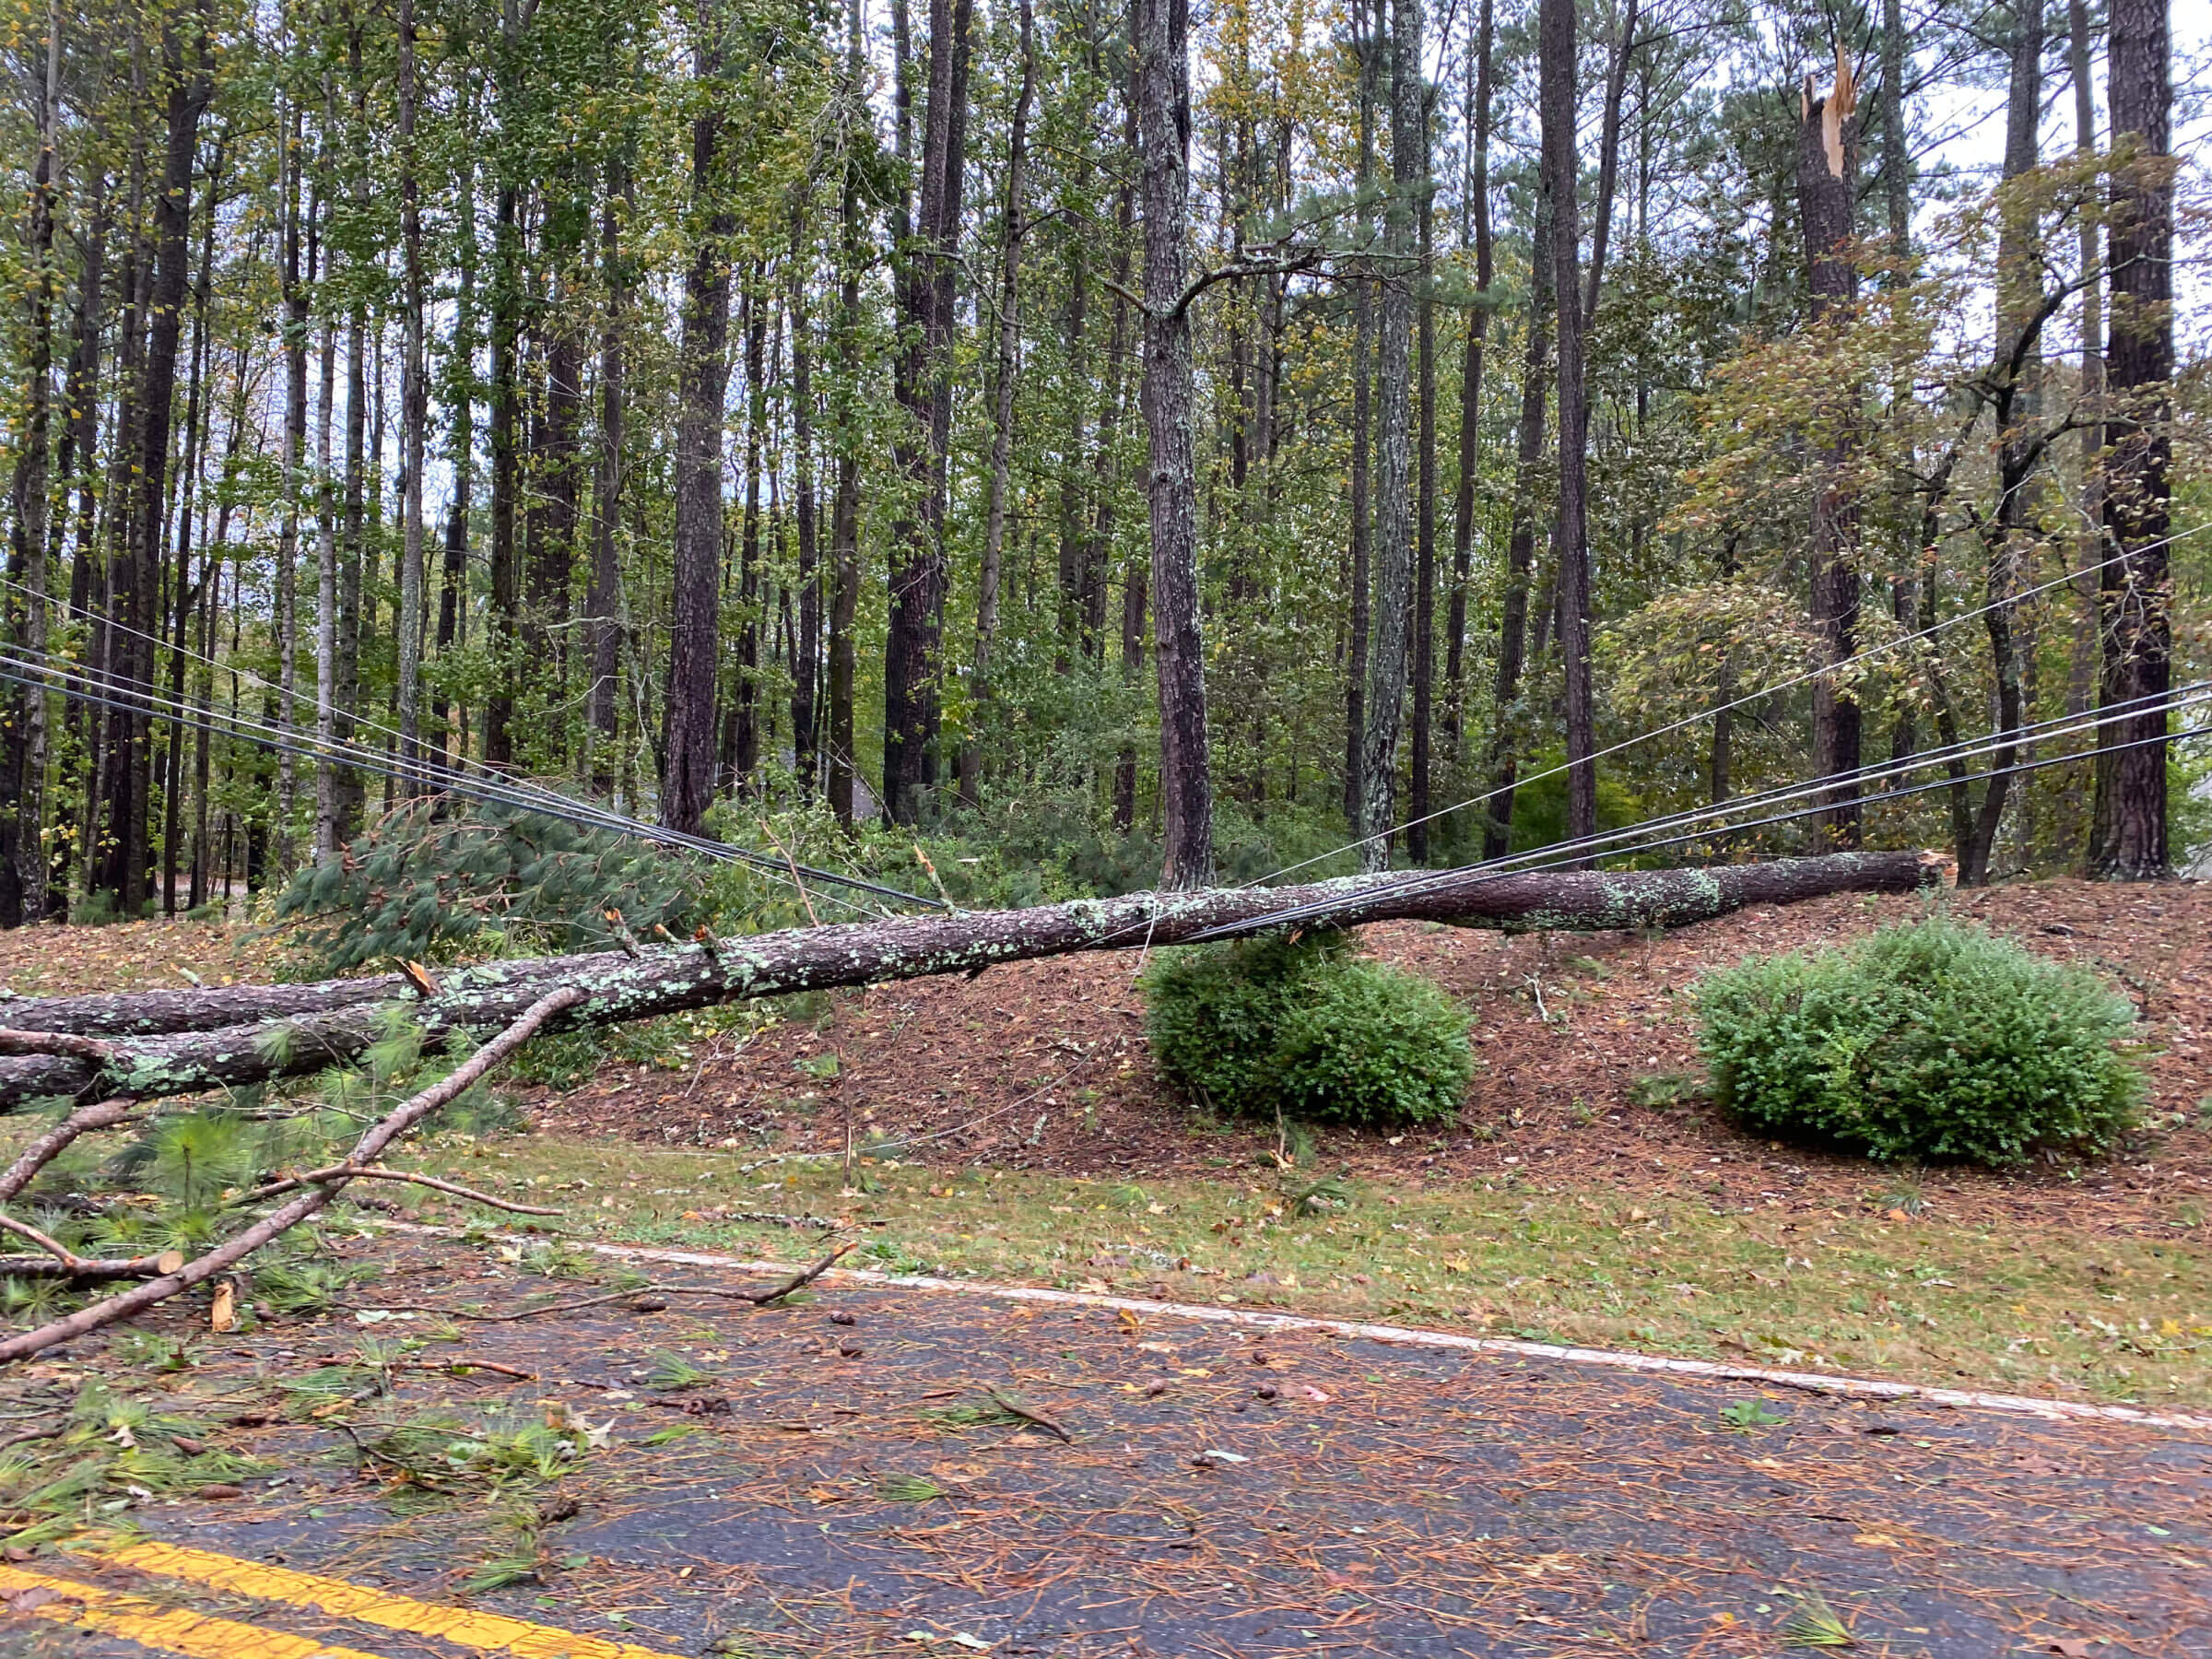 This tree caused a three-day power outage